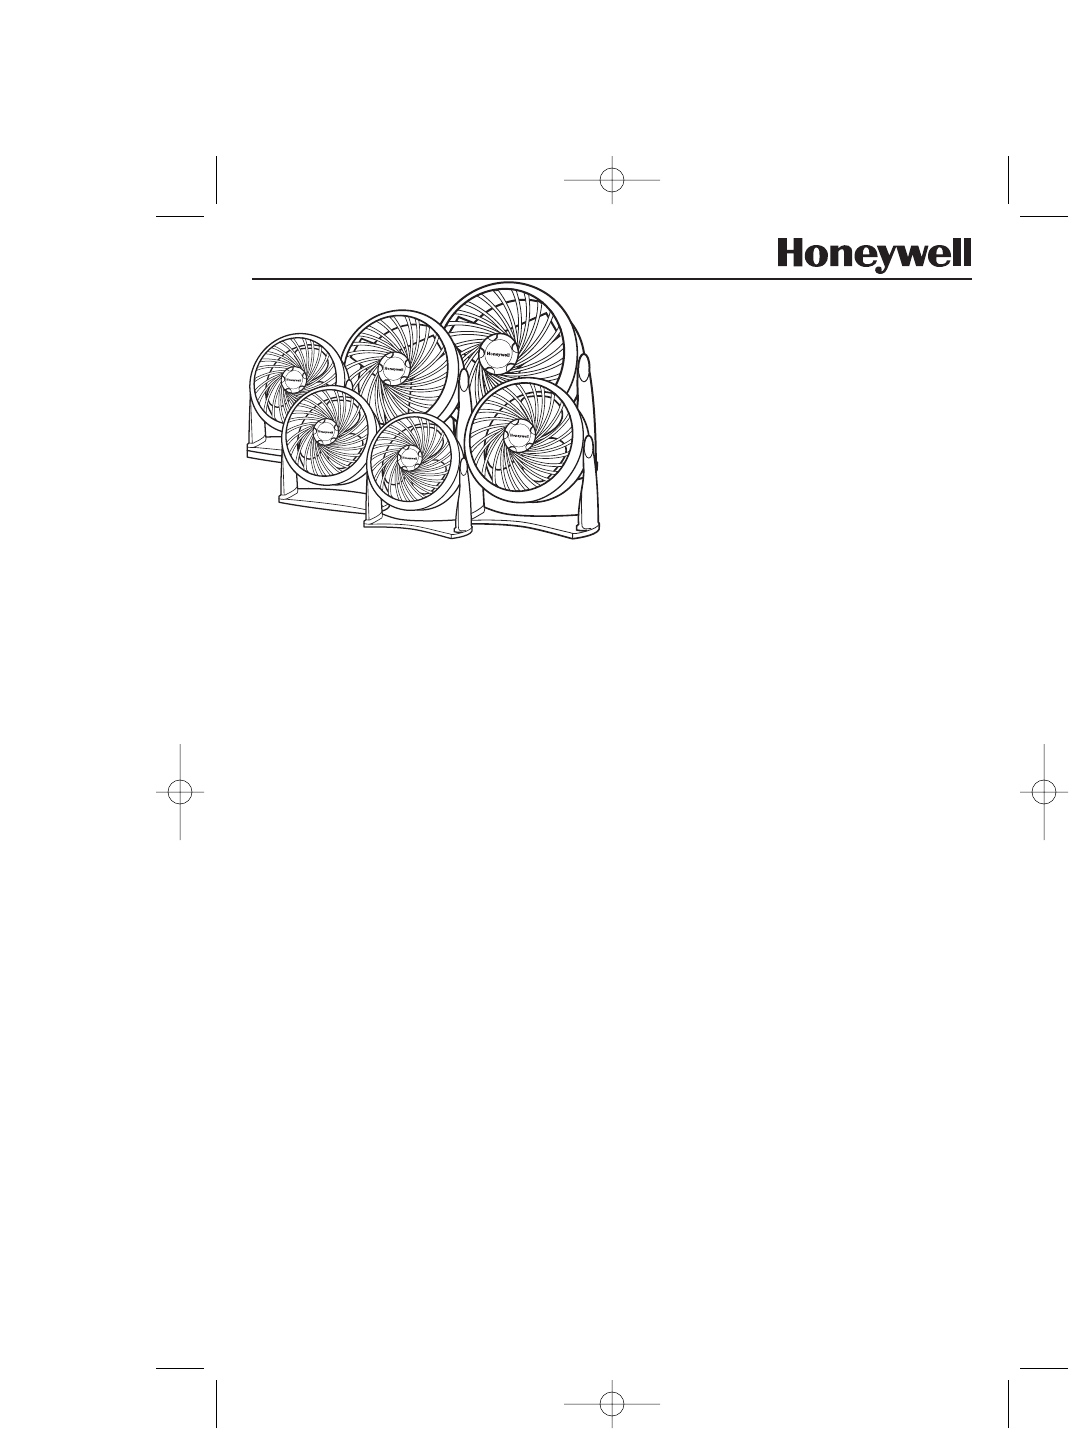 8c0f6200 cb26 4ad3 ad3c 24034beca945 bg1 honeywell fan ht 900 user guide manualsonline com  at bayanpartner.co